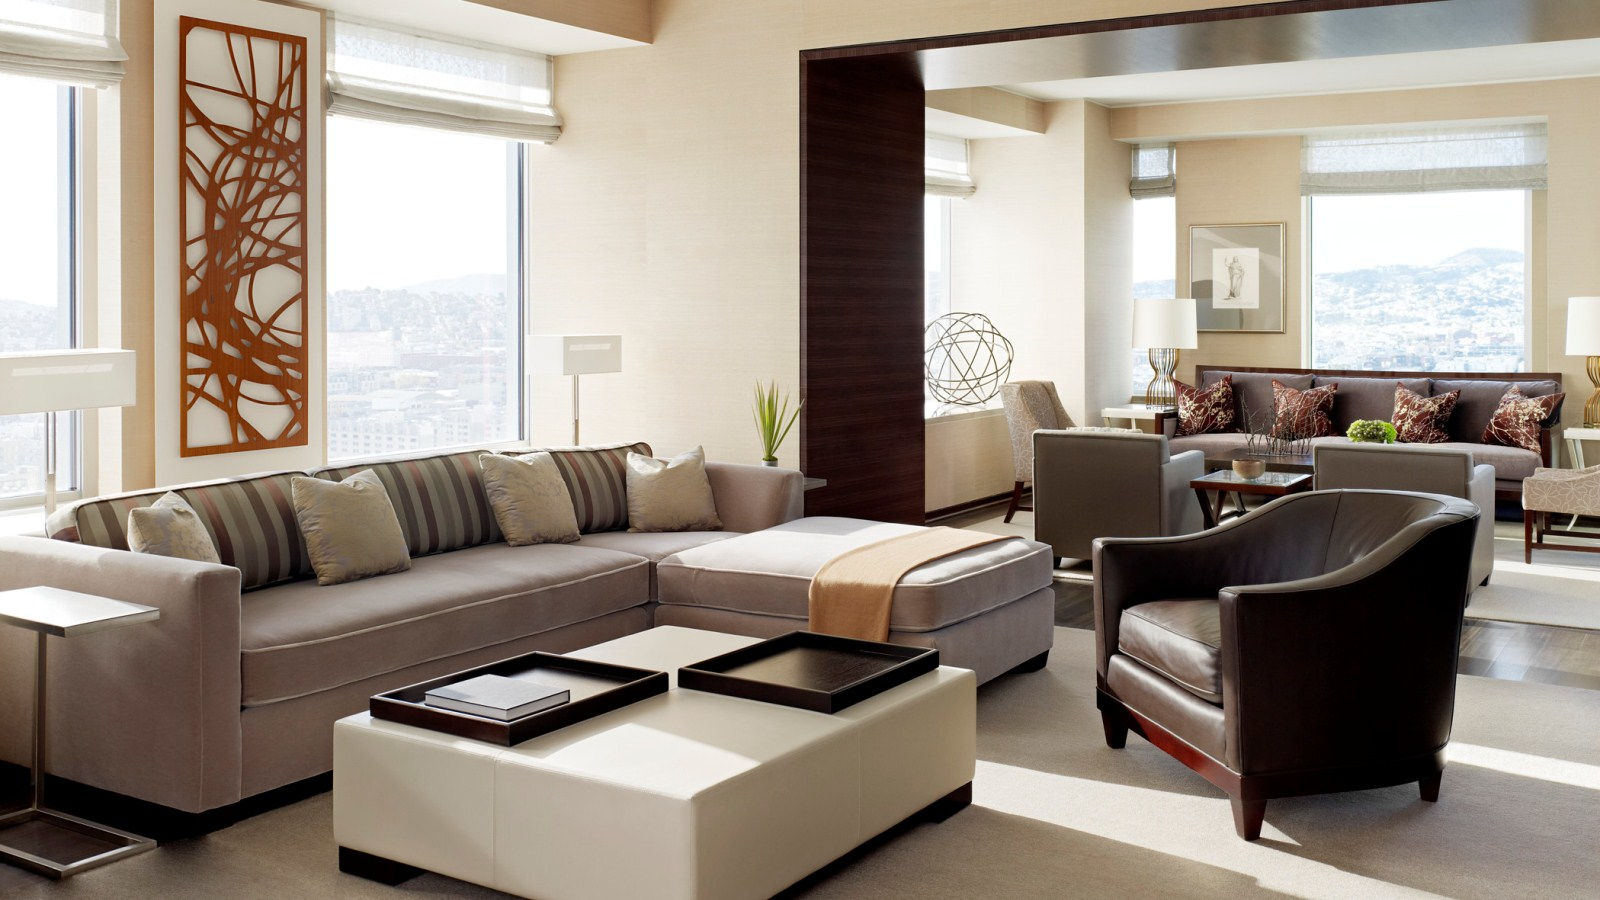 A luxurious sofa and two chairs as part of the spacious Presidential Suite available at The St. Regis San Francisco